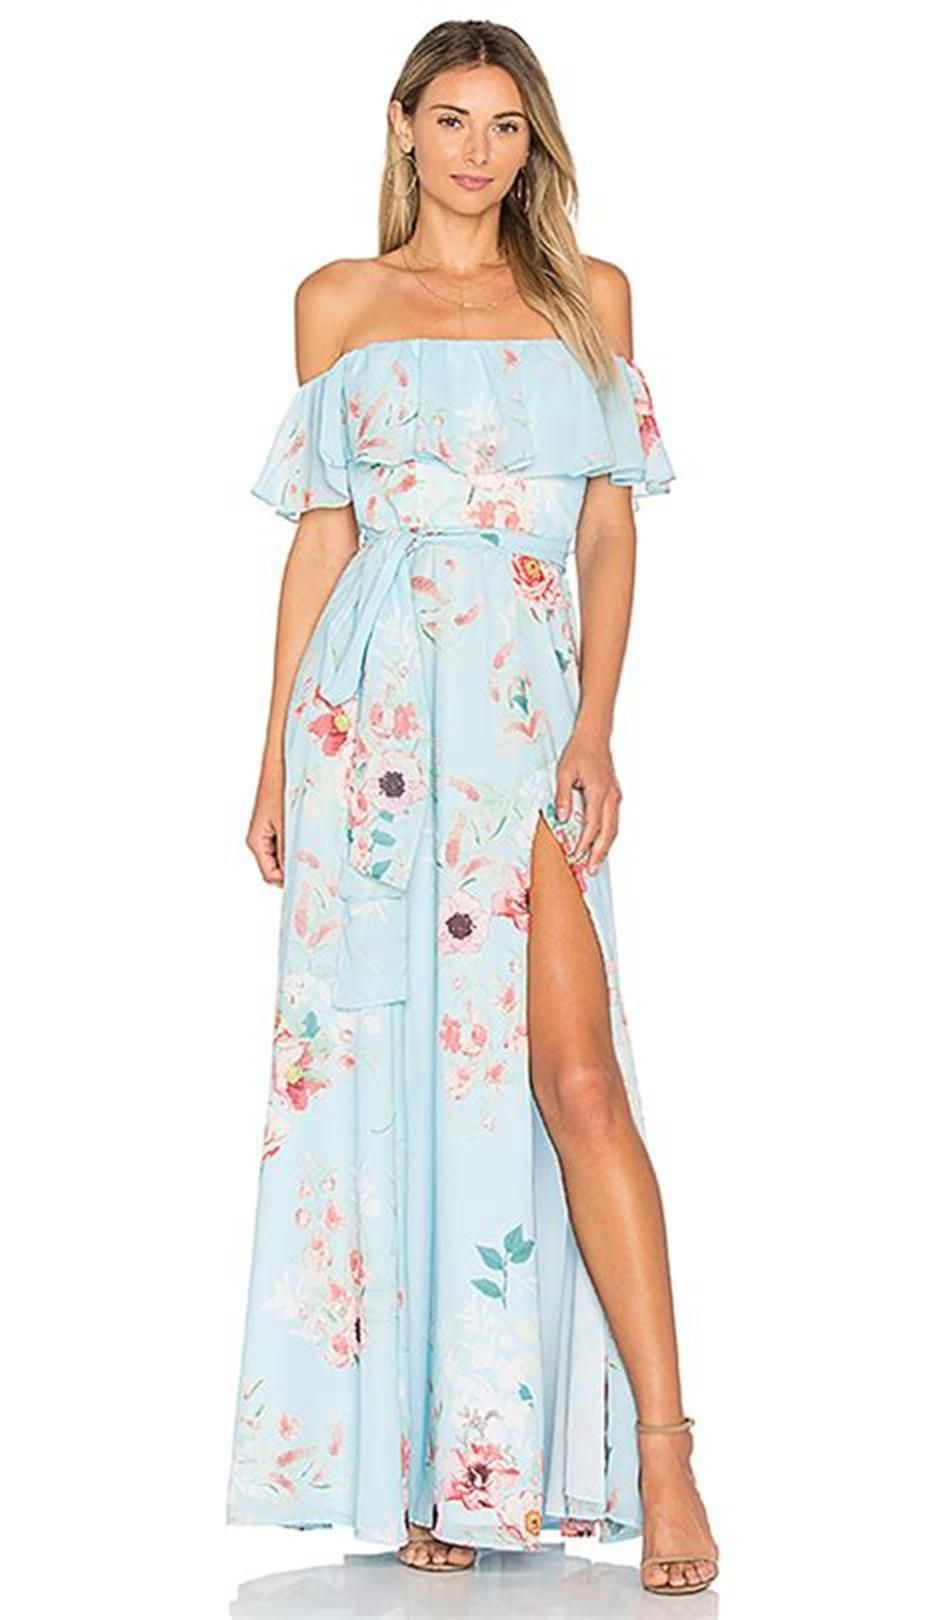 42dcbe58eff4 40 Beautiful Spring Wedding Guest Dresses for 2019 37